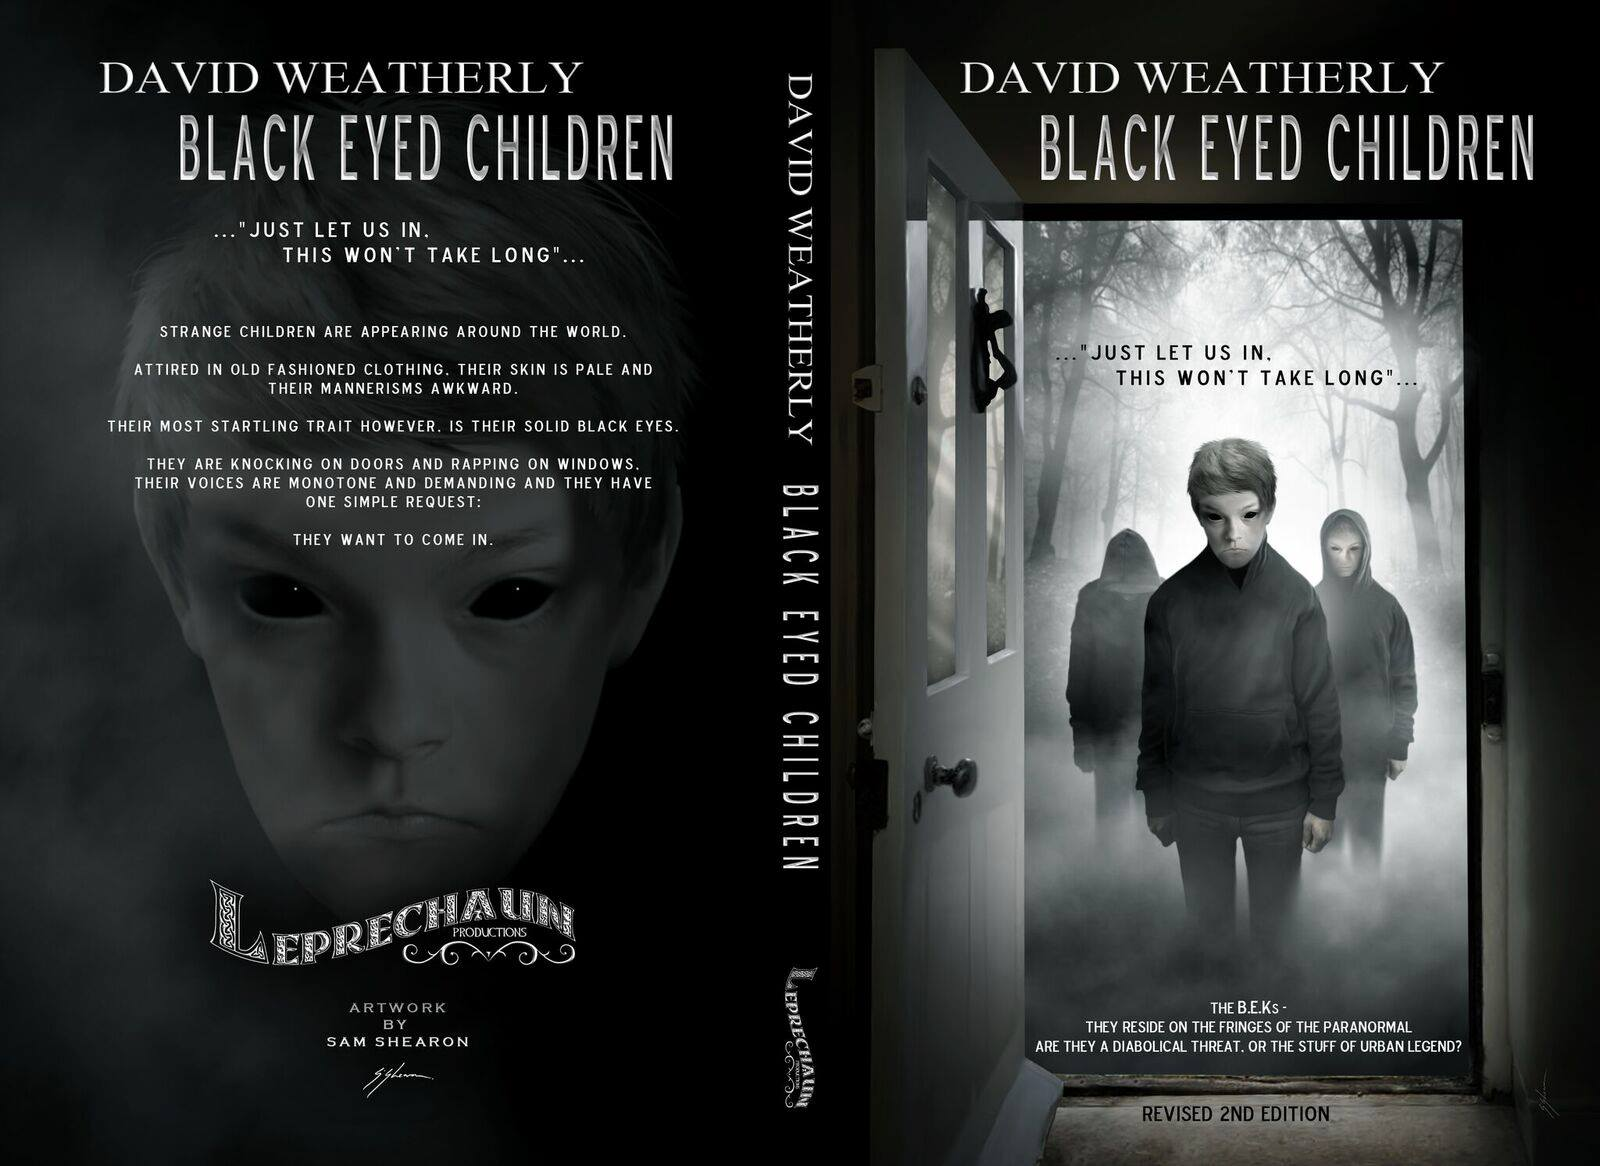 black eyed children revised 2nd edition